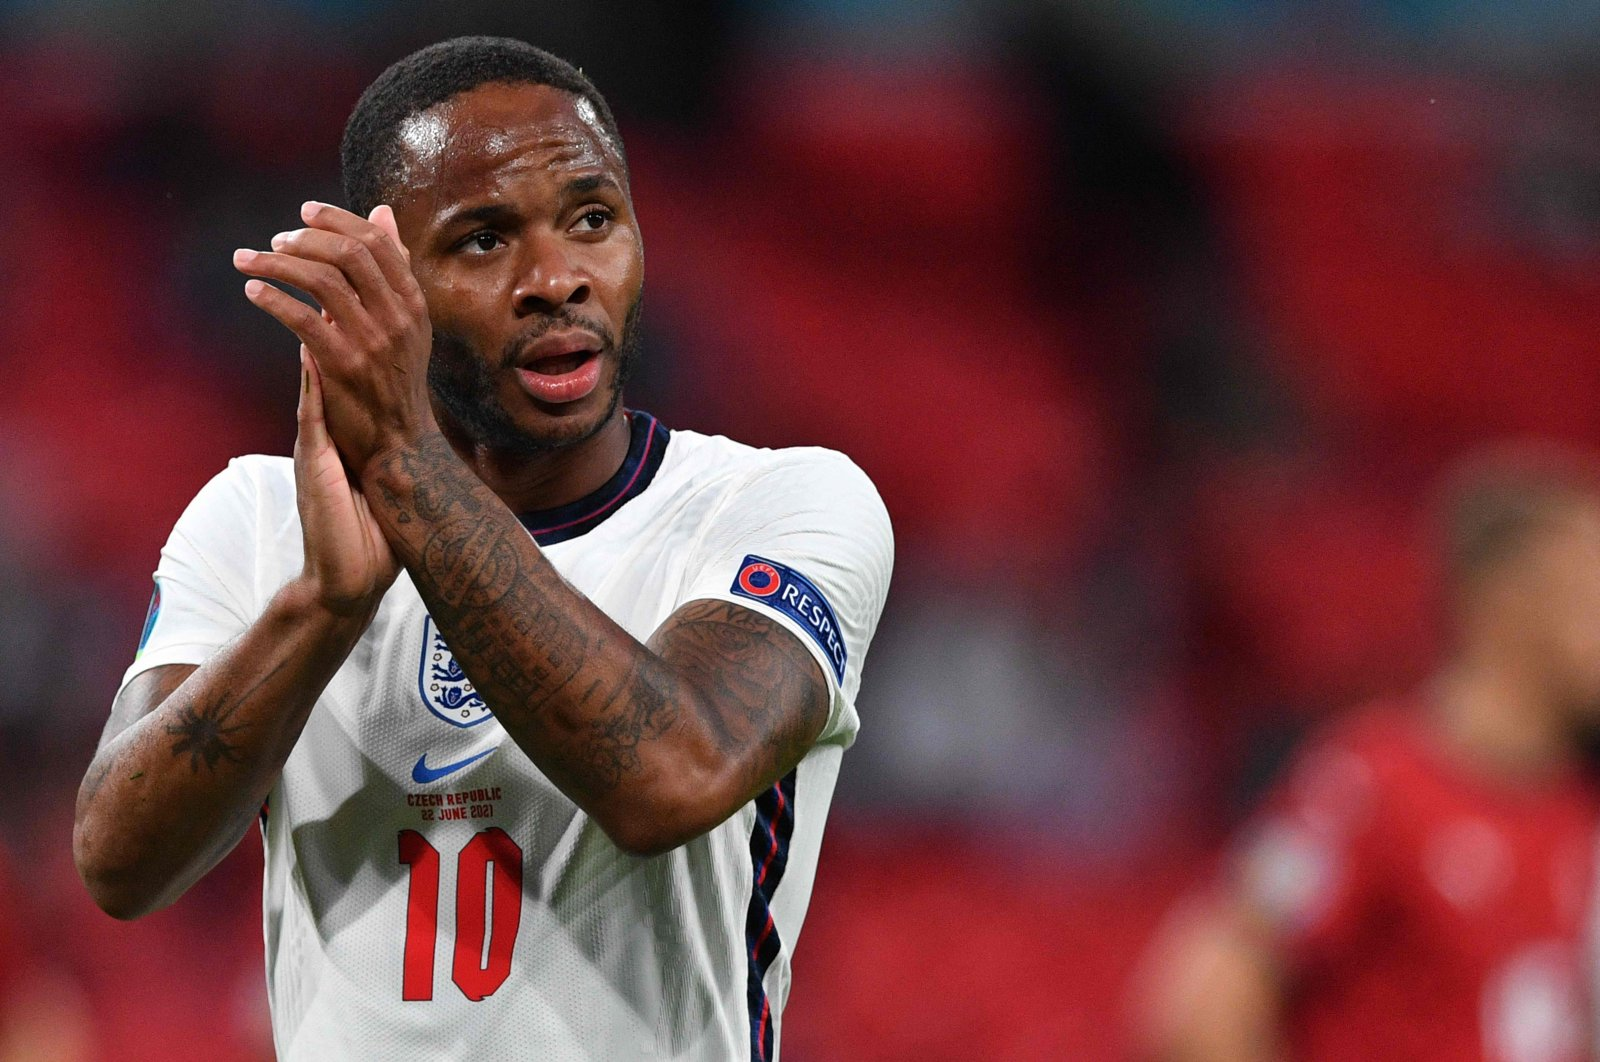 England's forward Raheem Sterling applauds as he comes off during the UEFA EURO 2020 Group D football match between Czech Republic and England at Wembley Stadium in London on June 22, 2021. (AFP Photo)